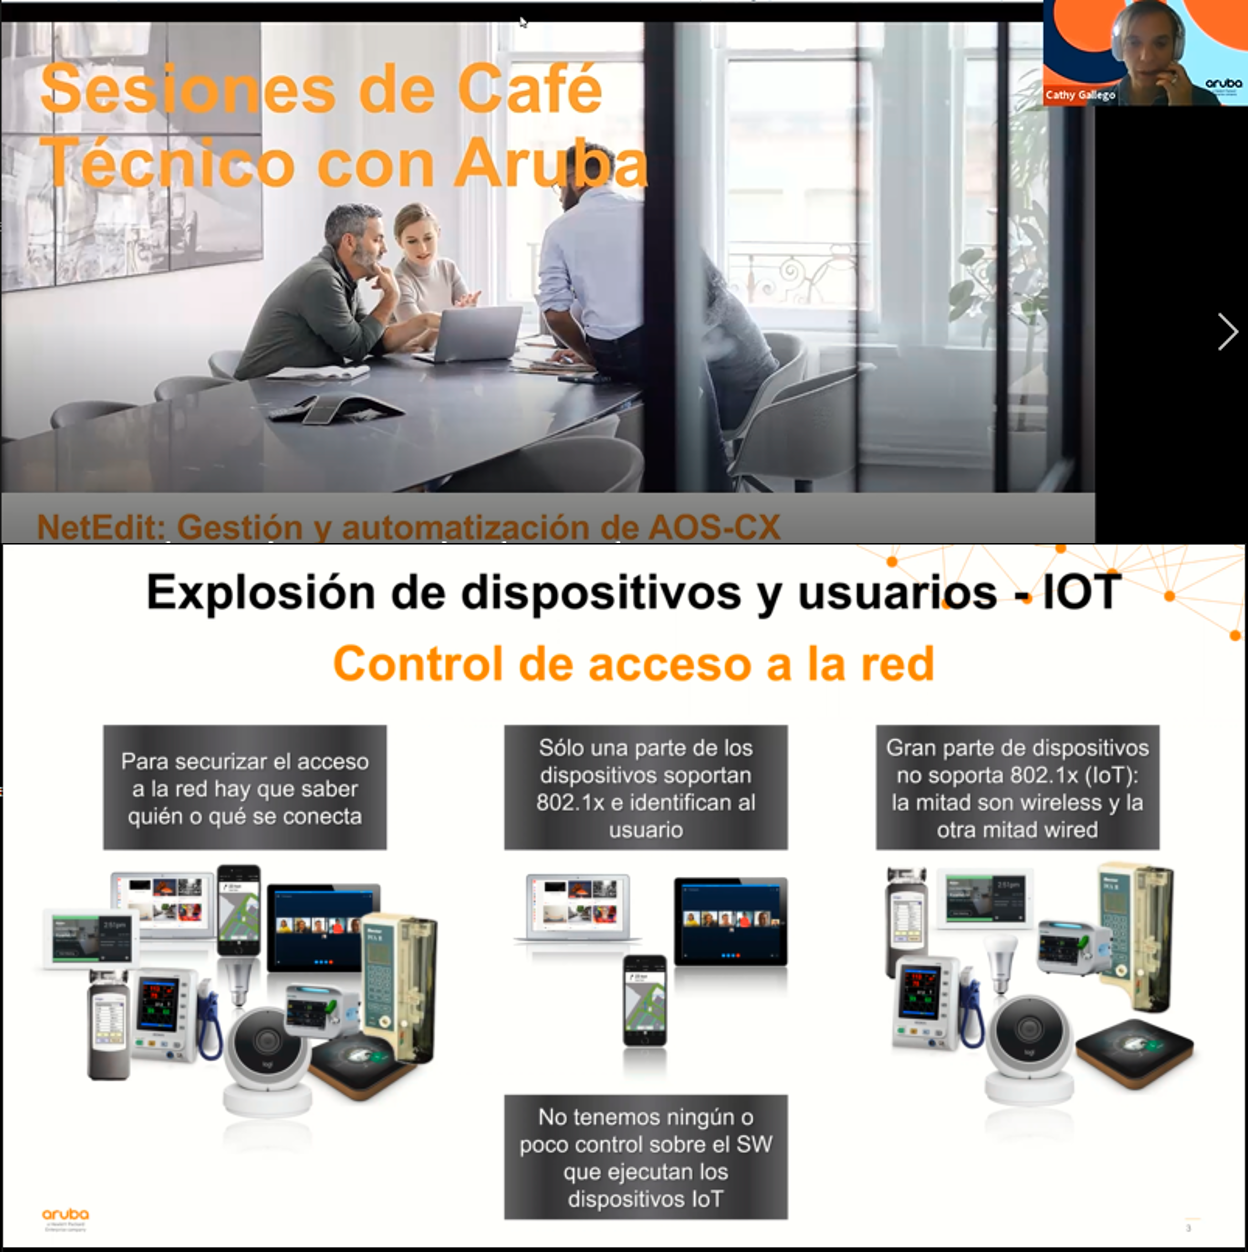 Automatización y securización en el cable con Dynamic Segmentation